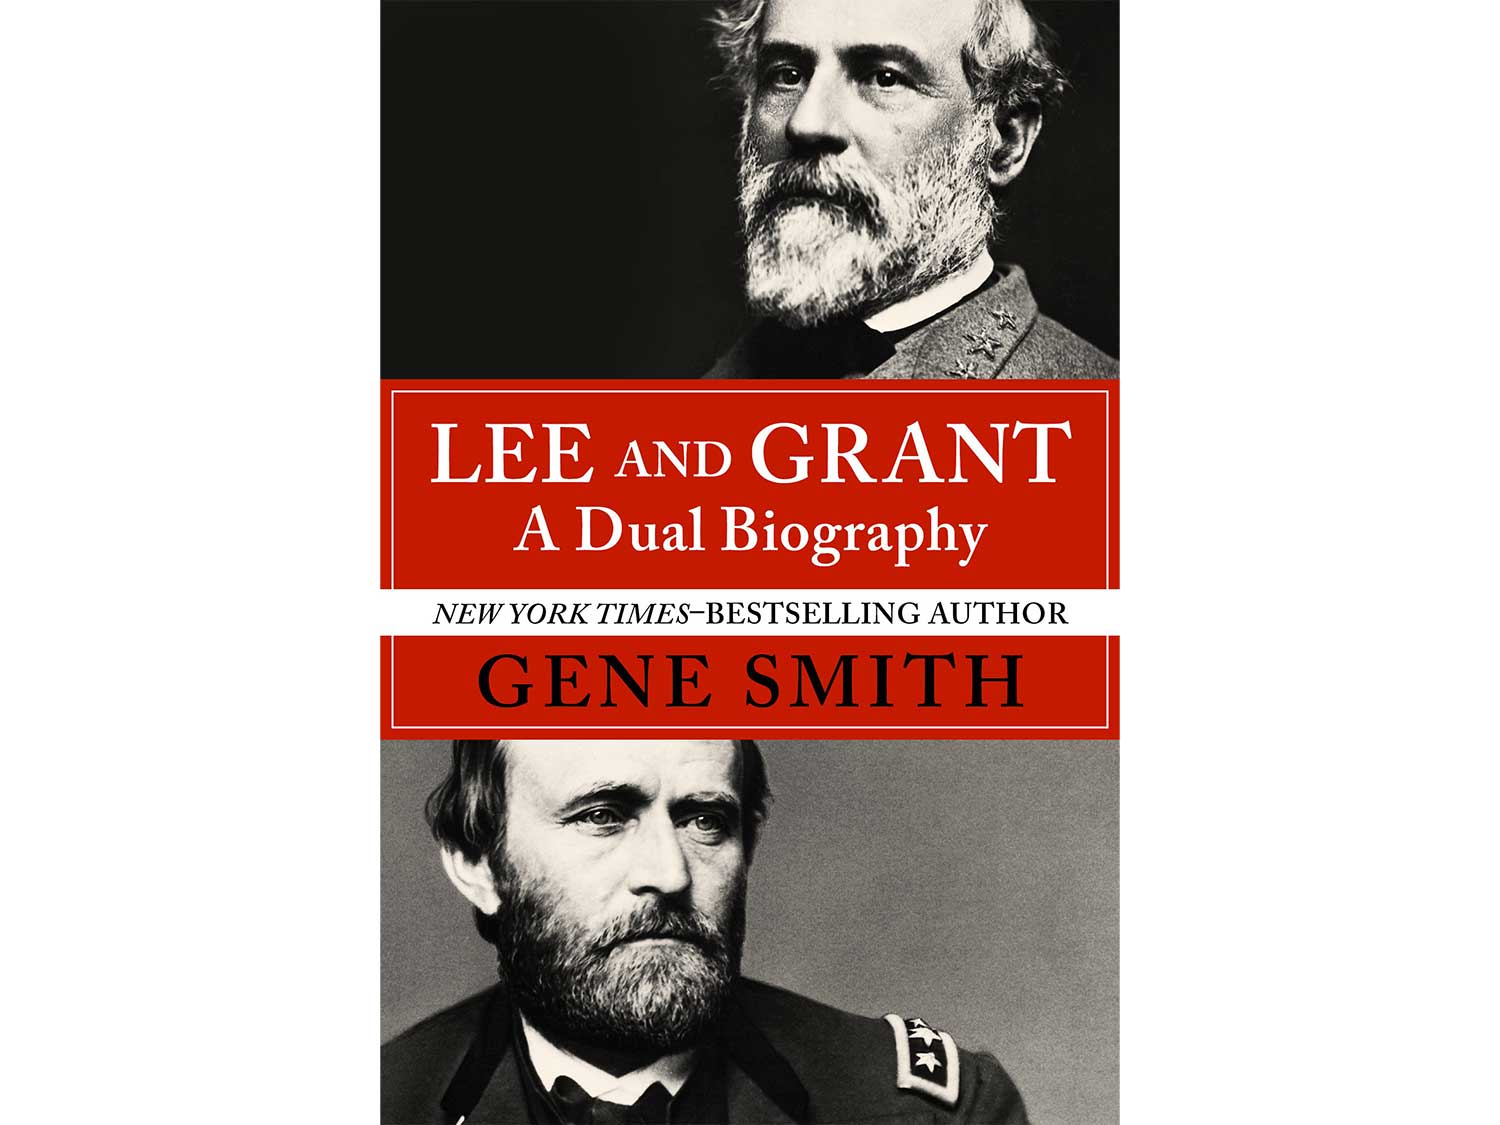 Lee and Grant, by Gene Smith